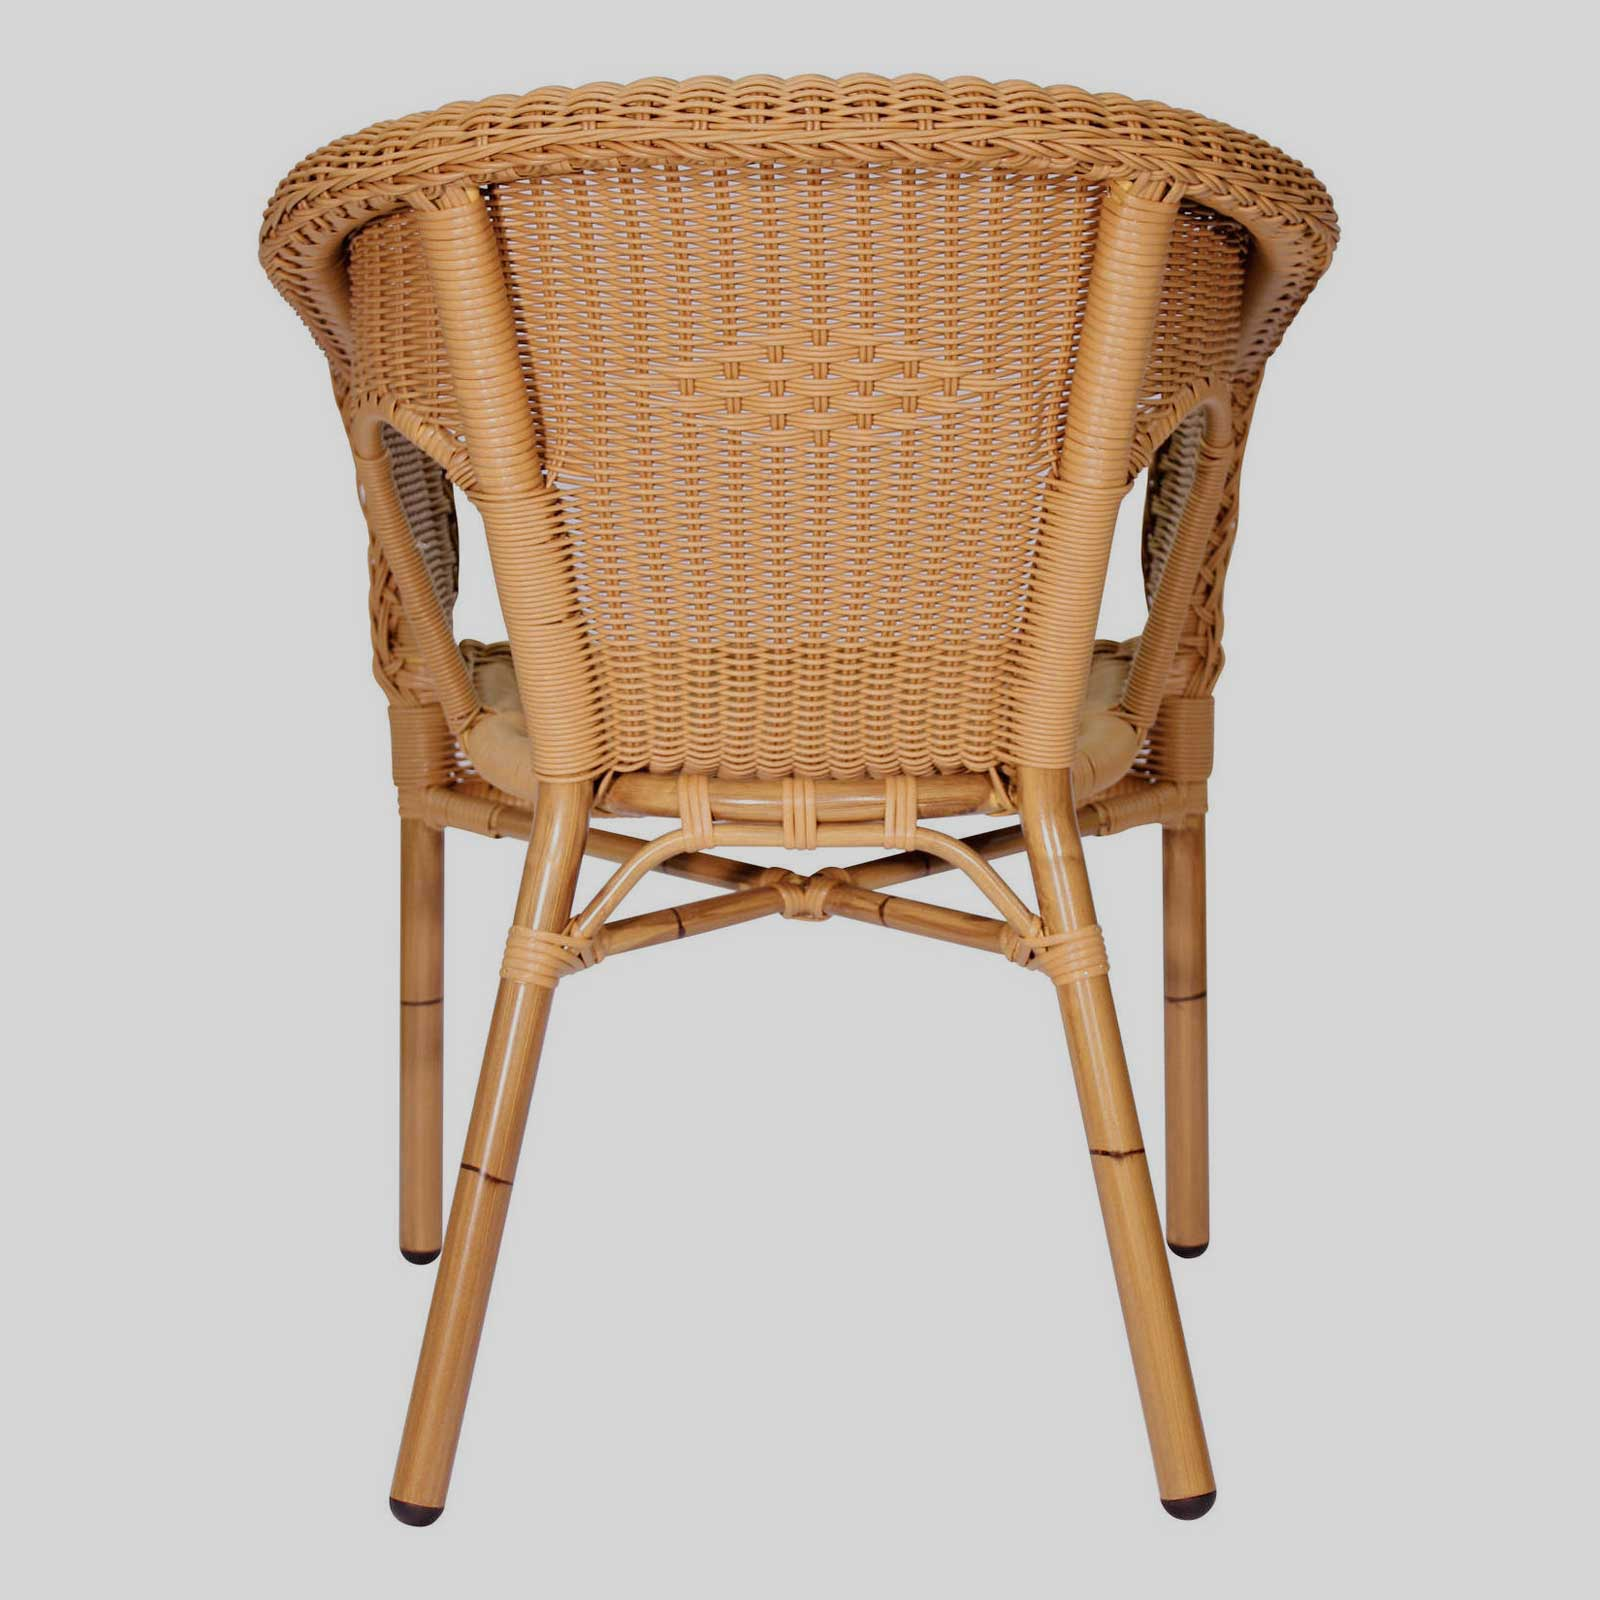 Outdoor wicker chairs brazil concept collections for Bamboo outdoor furniture